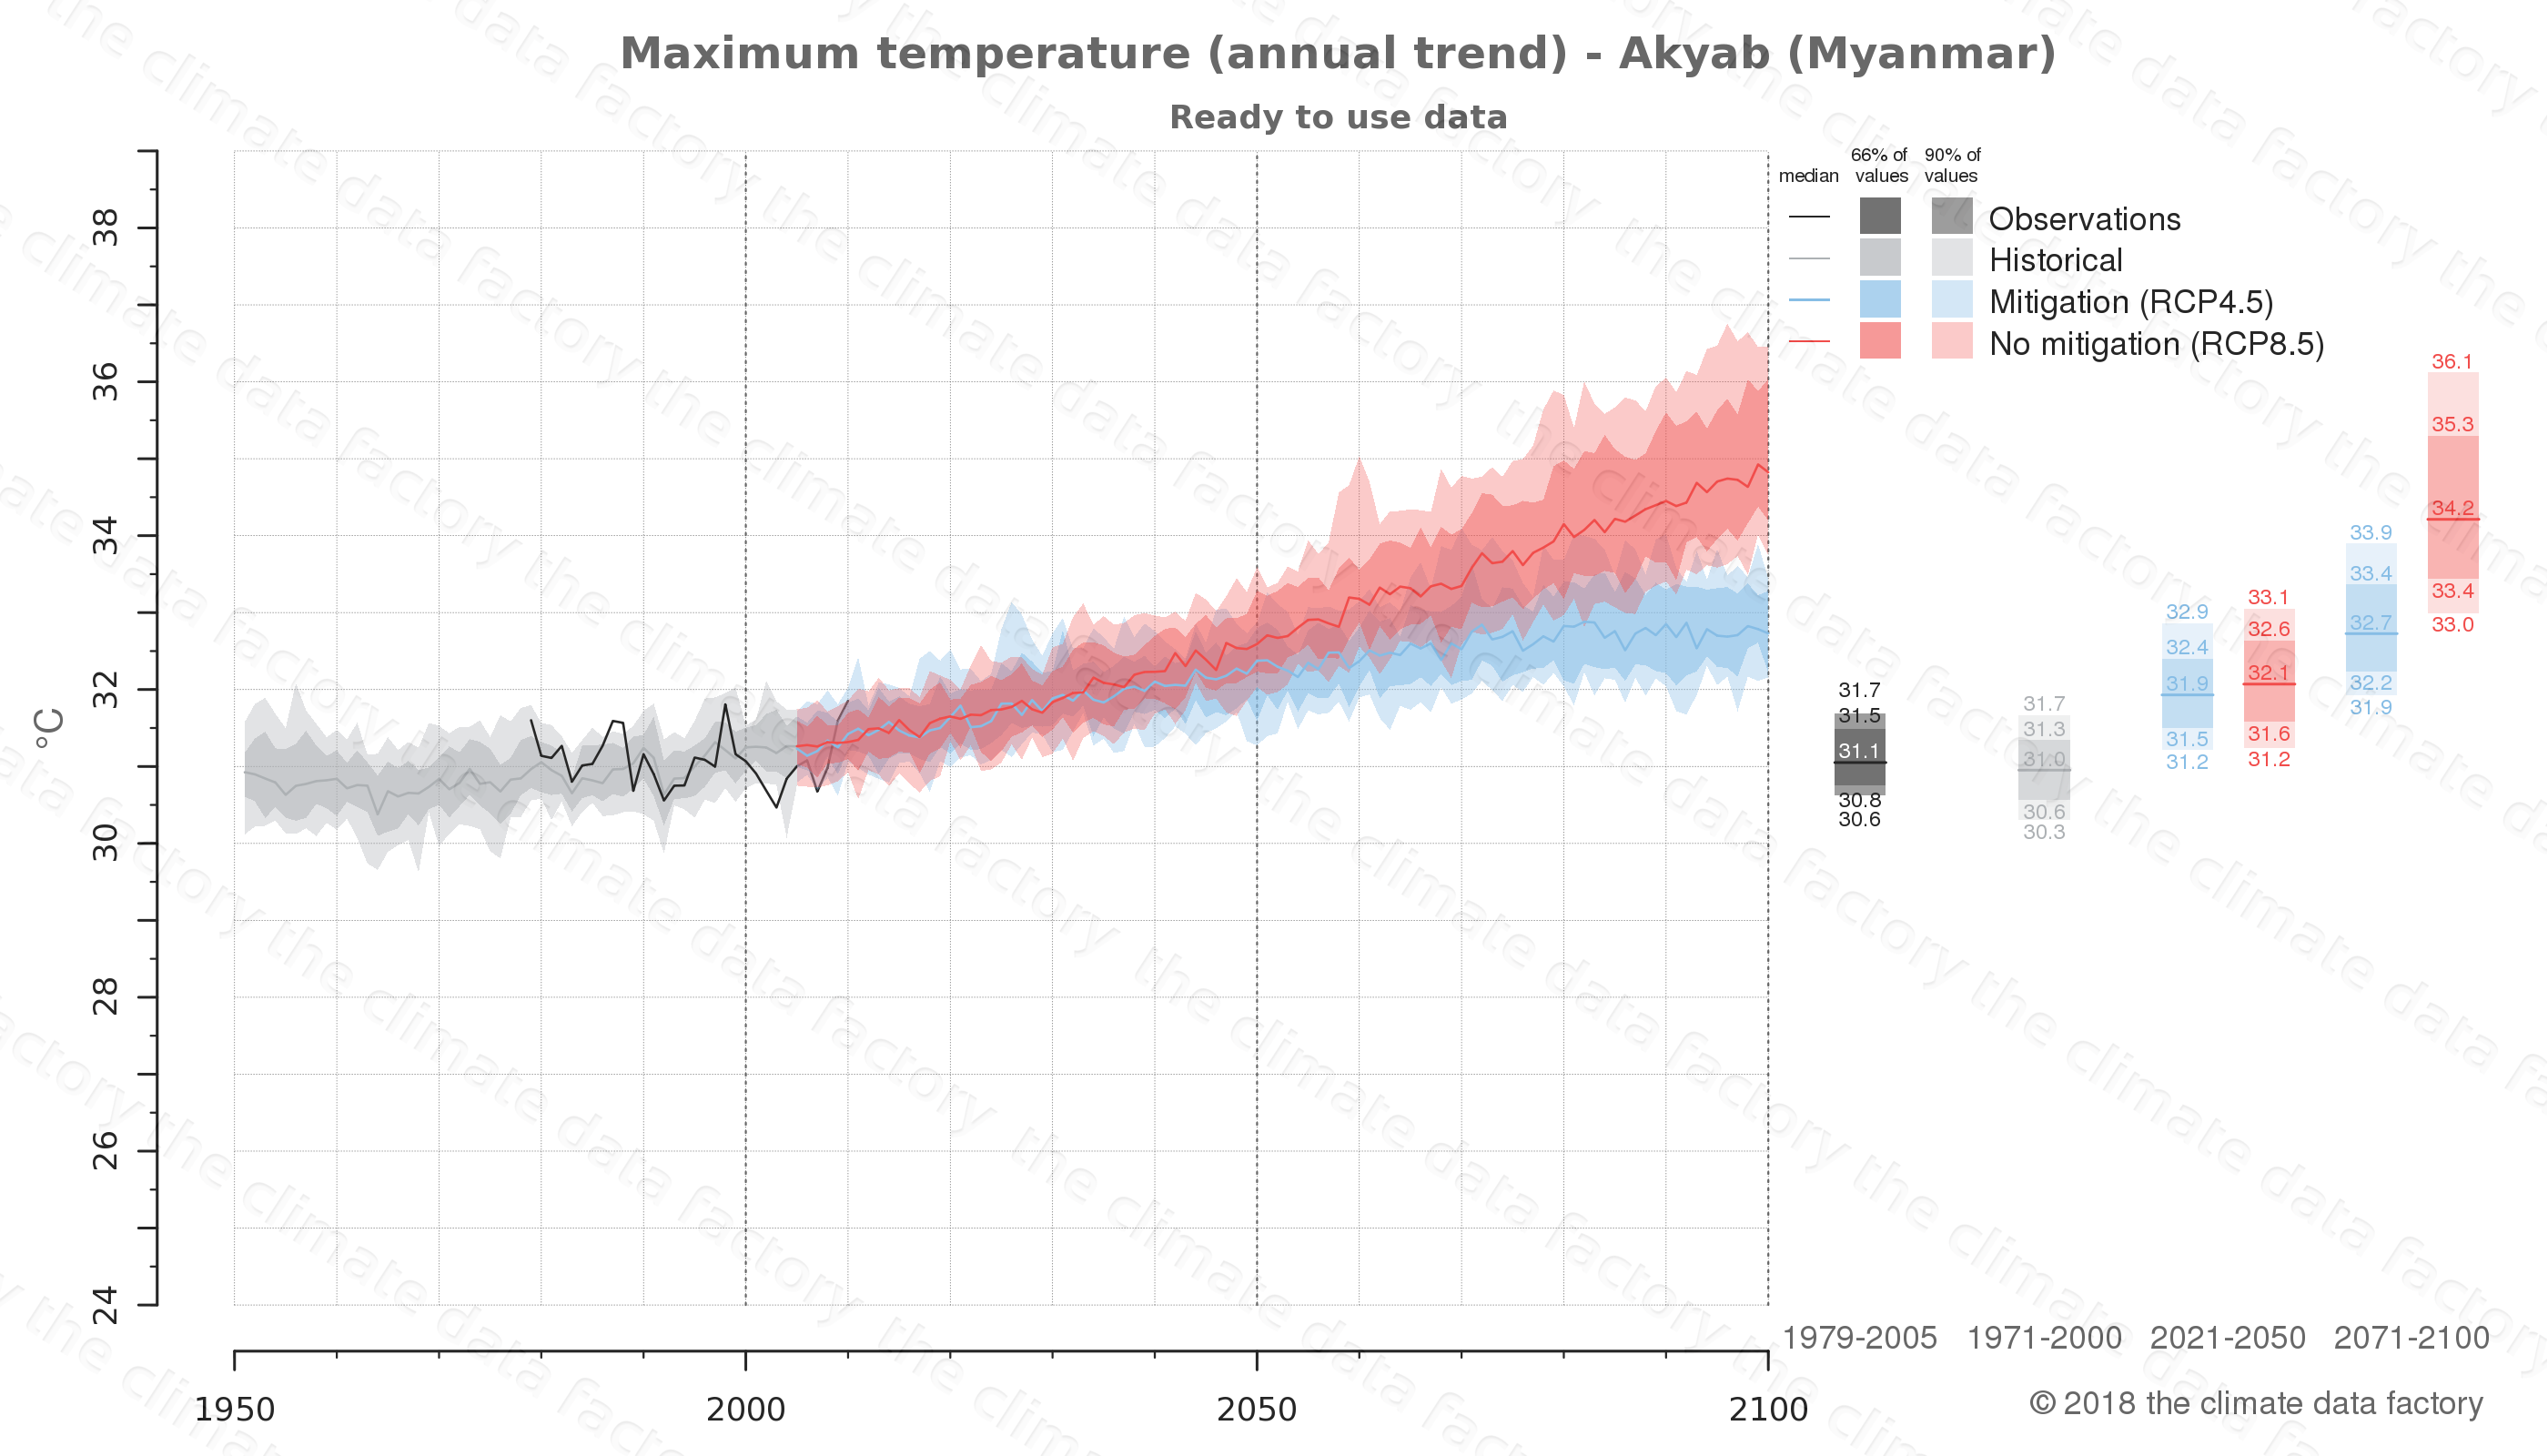 climate change data policy adaptation climate graph city data maximum-temperature akyab myanmar